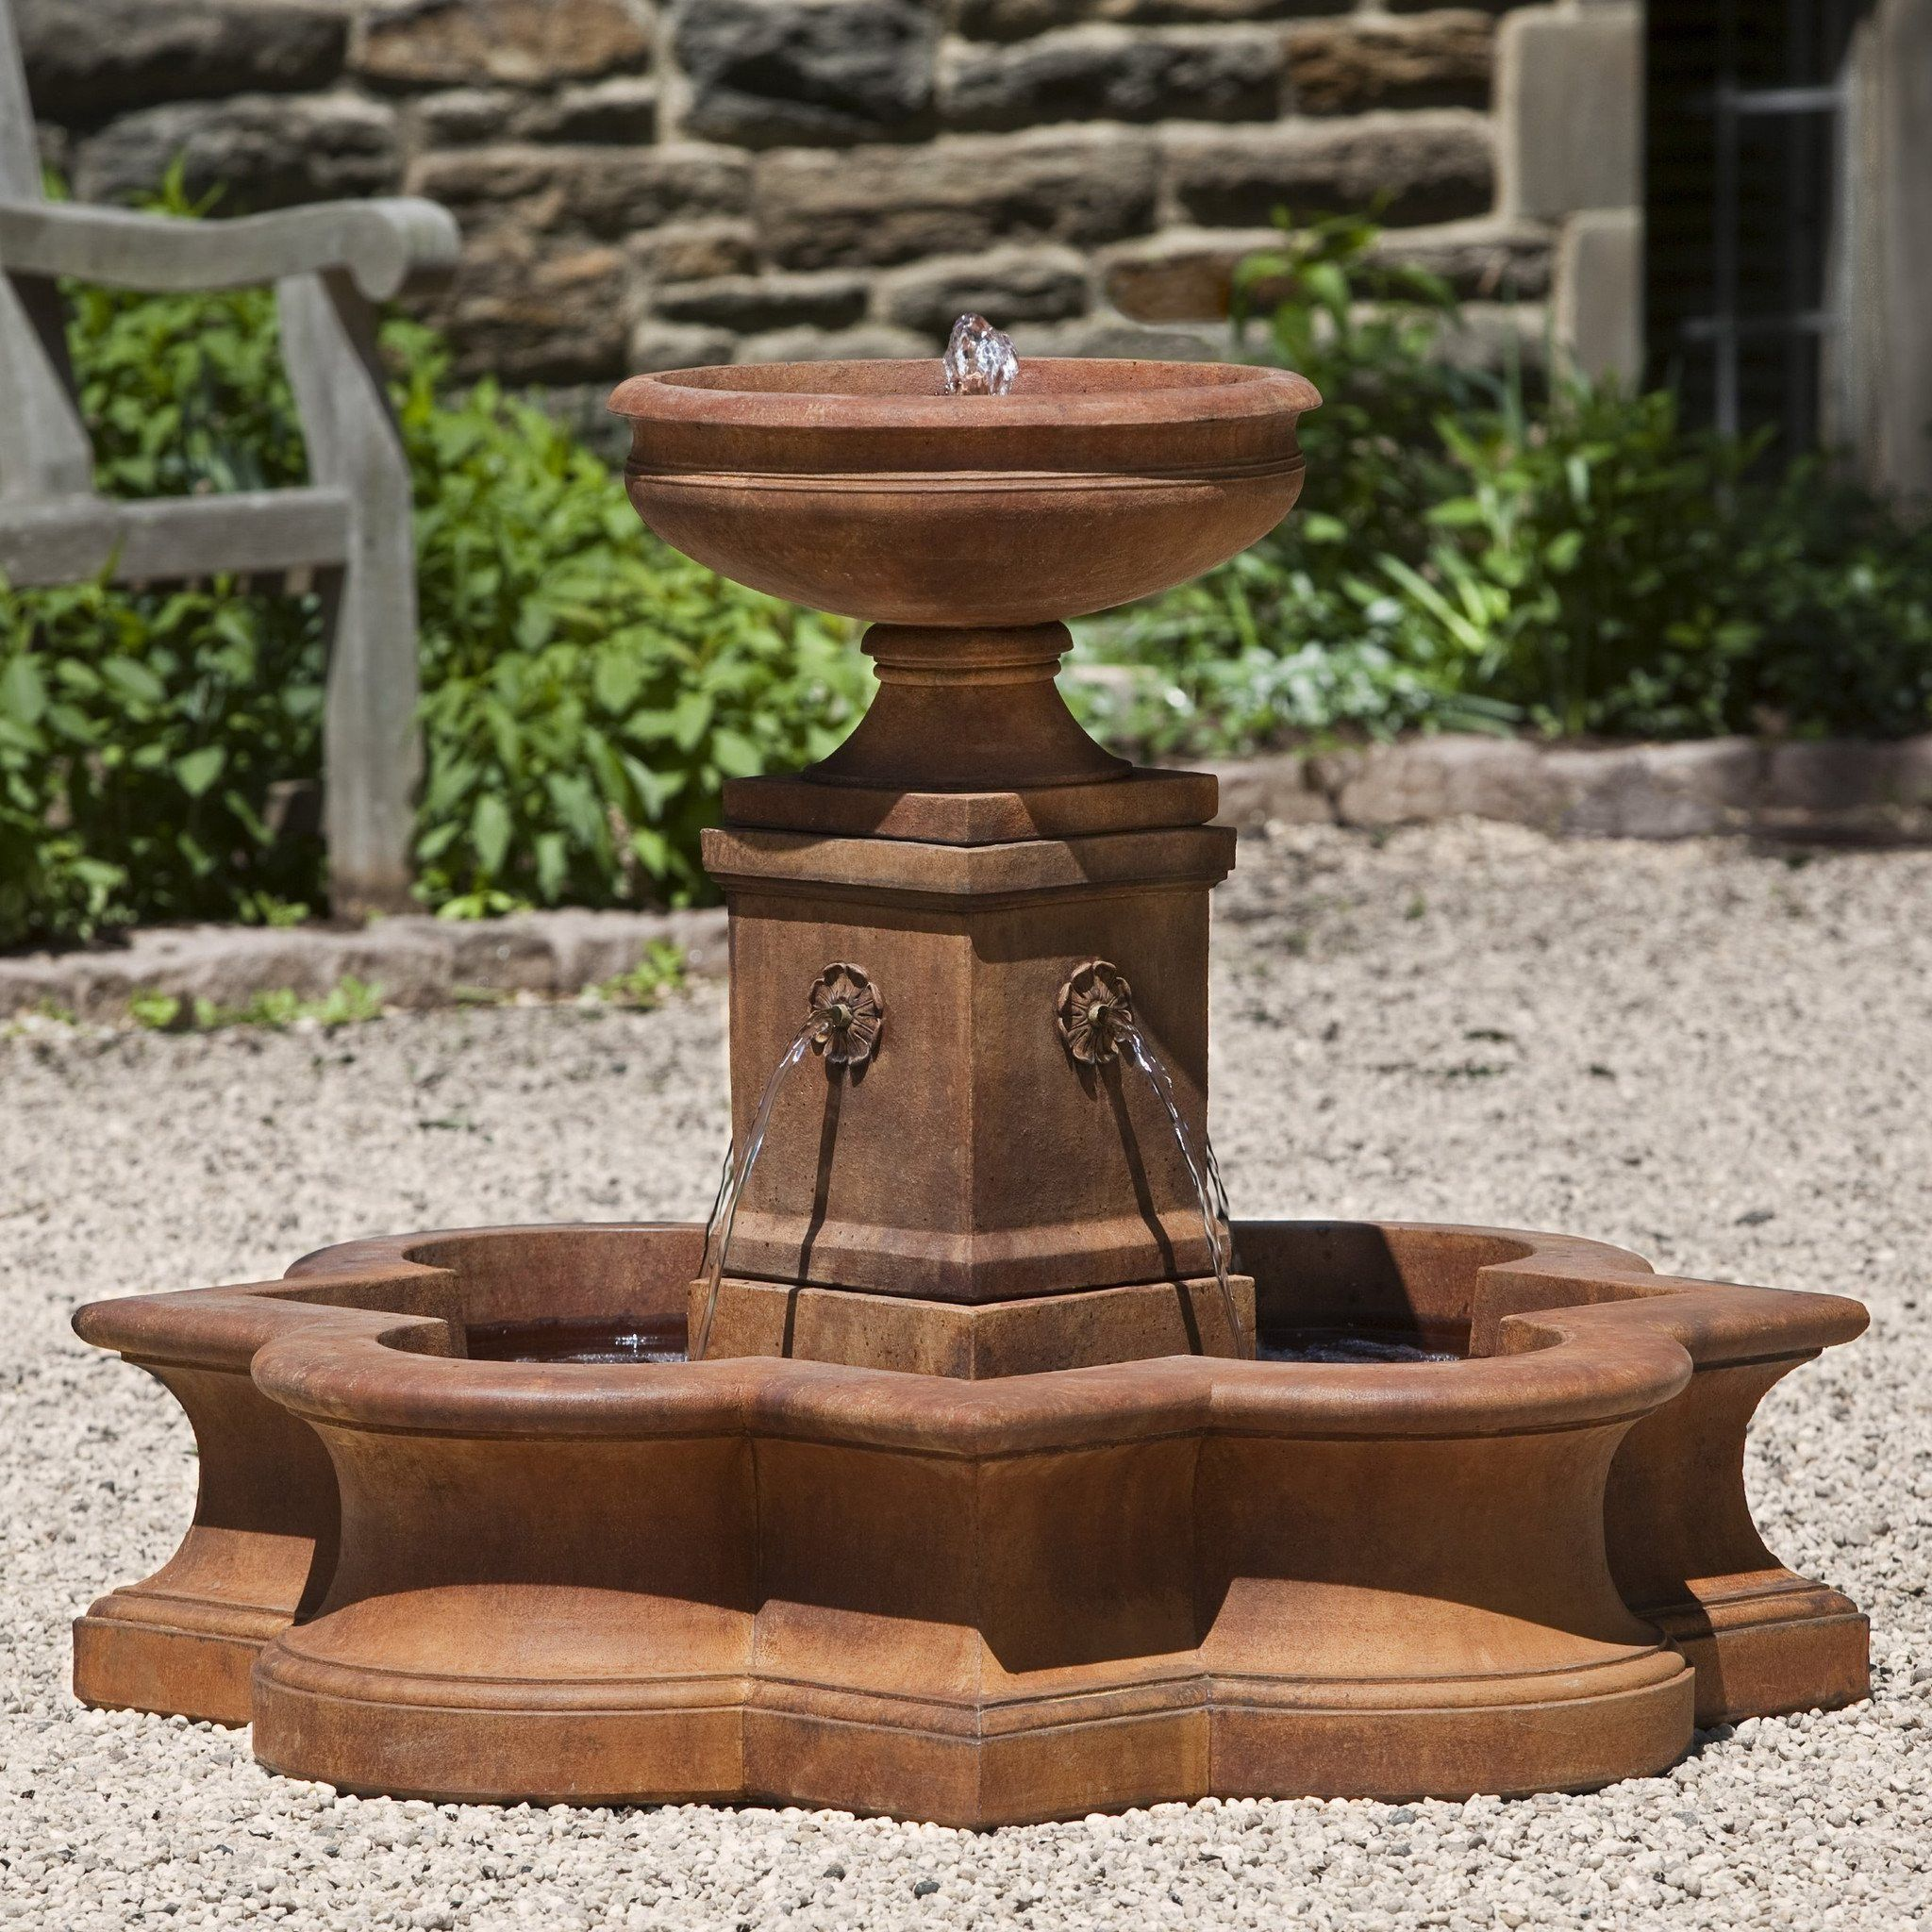 Beauvais Water Fountain with Basin | Water fountains, Fountain and ...